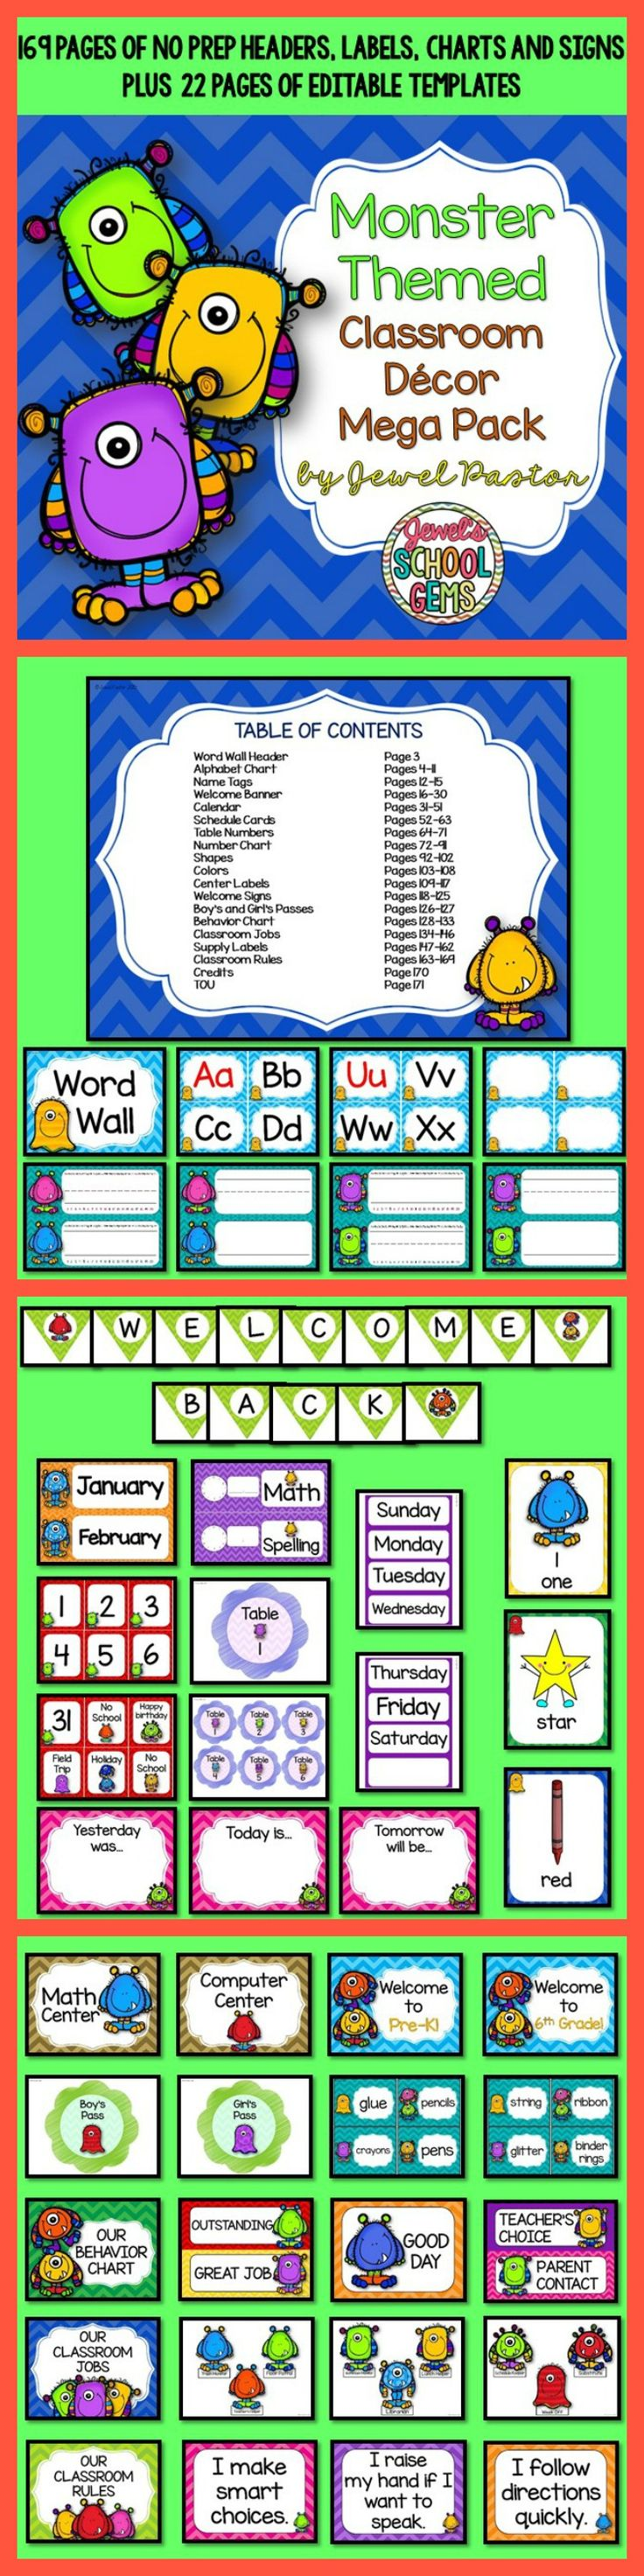 Monster Theme : Monster Theme   This Monster Themed Classroom Decor Mega Pack comes with 169 pages of NO PREP HEADERS, LABELS, CHARTS AND SIGNS plus 22 pages of EDITABLE PARTS/TEMPLATES.